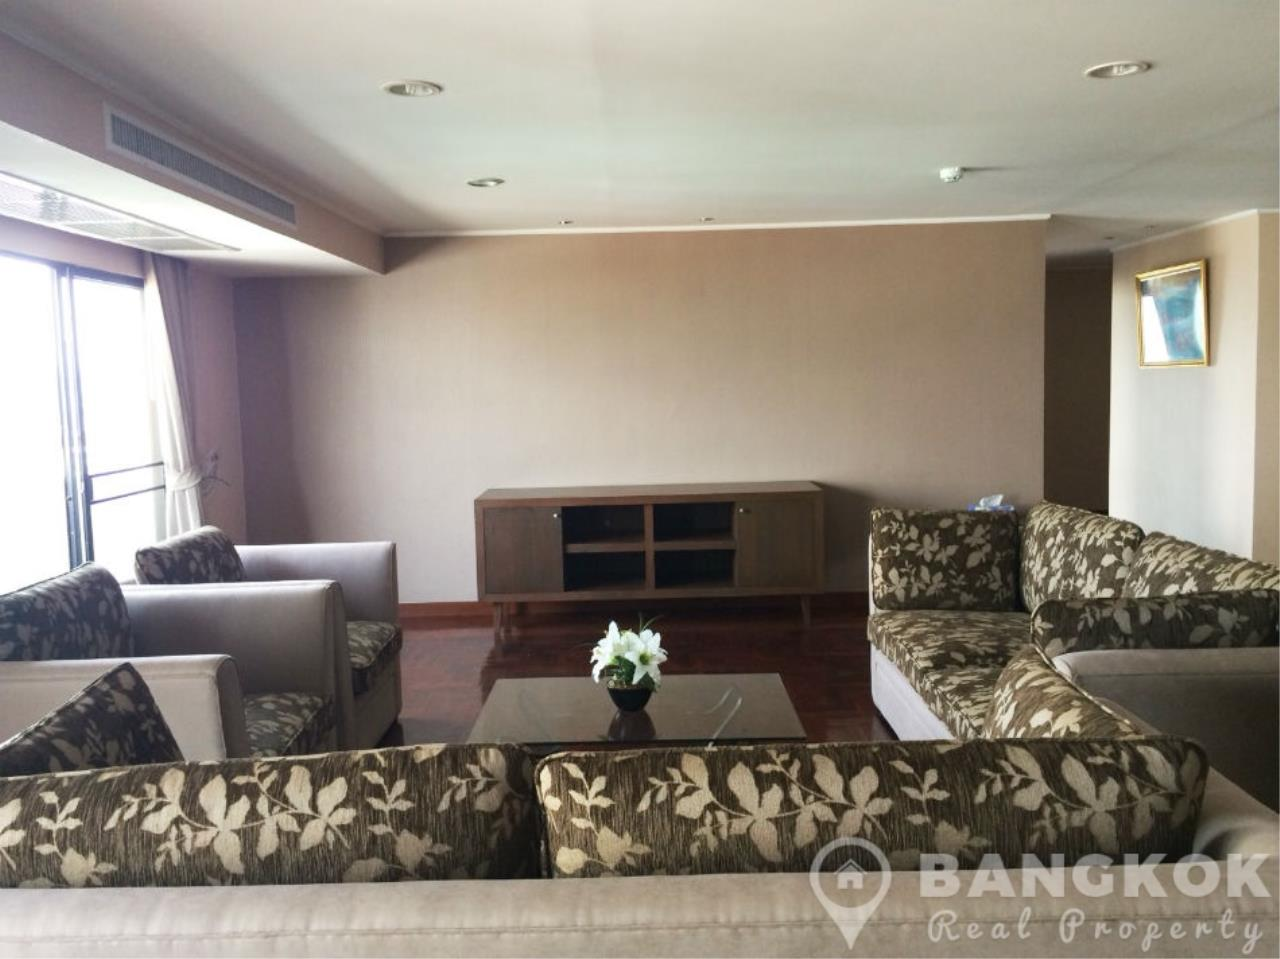 Bangkok Real Property Agency's Casa Viva | Very Spacious 3 Bed 3 Bath Condo in Ekkamai 1